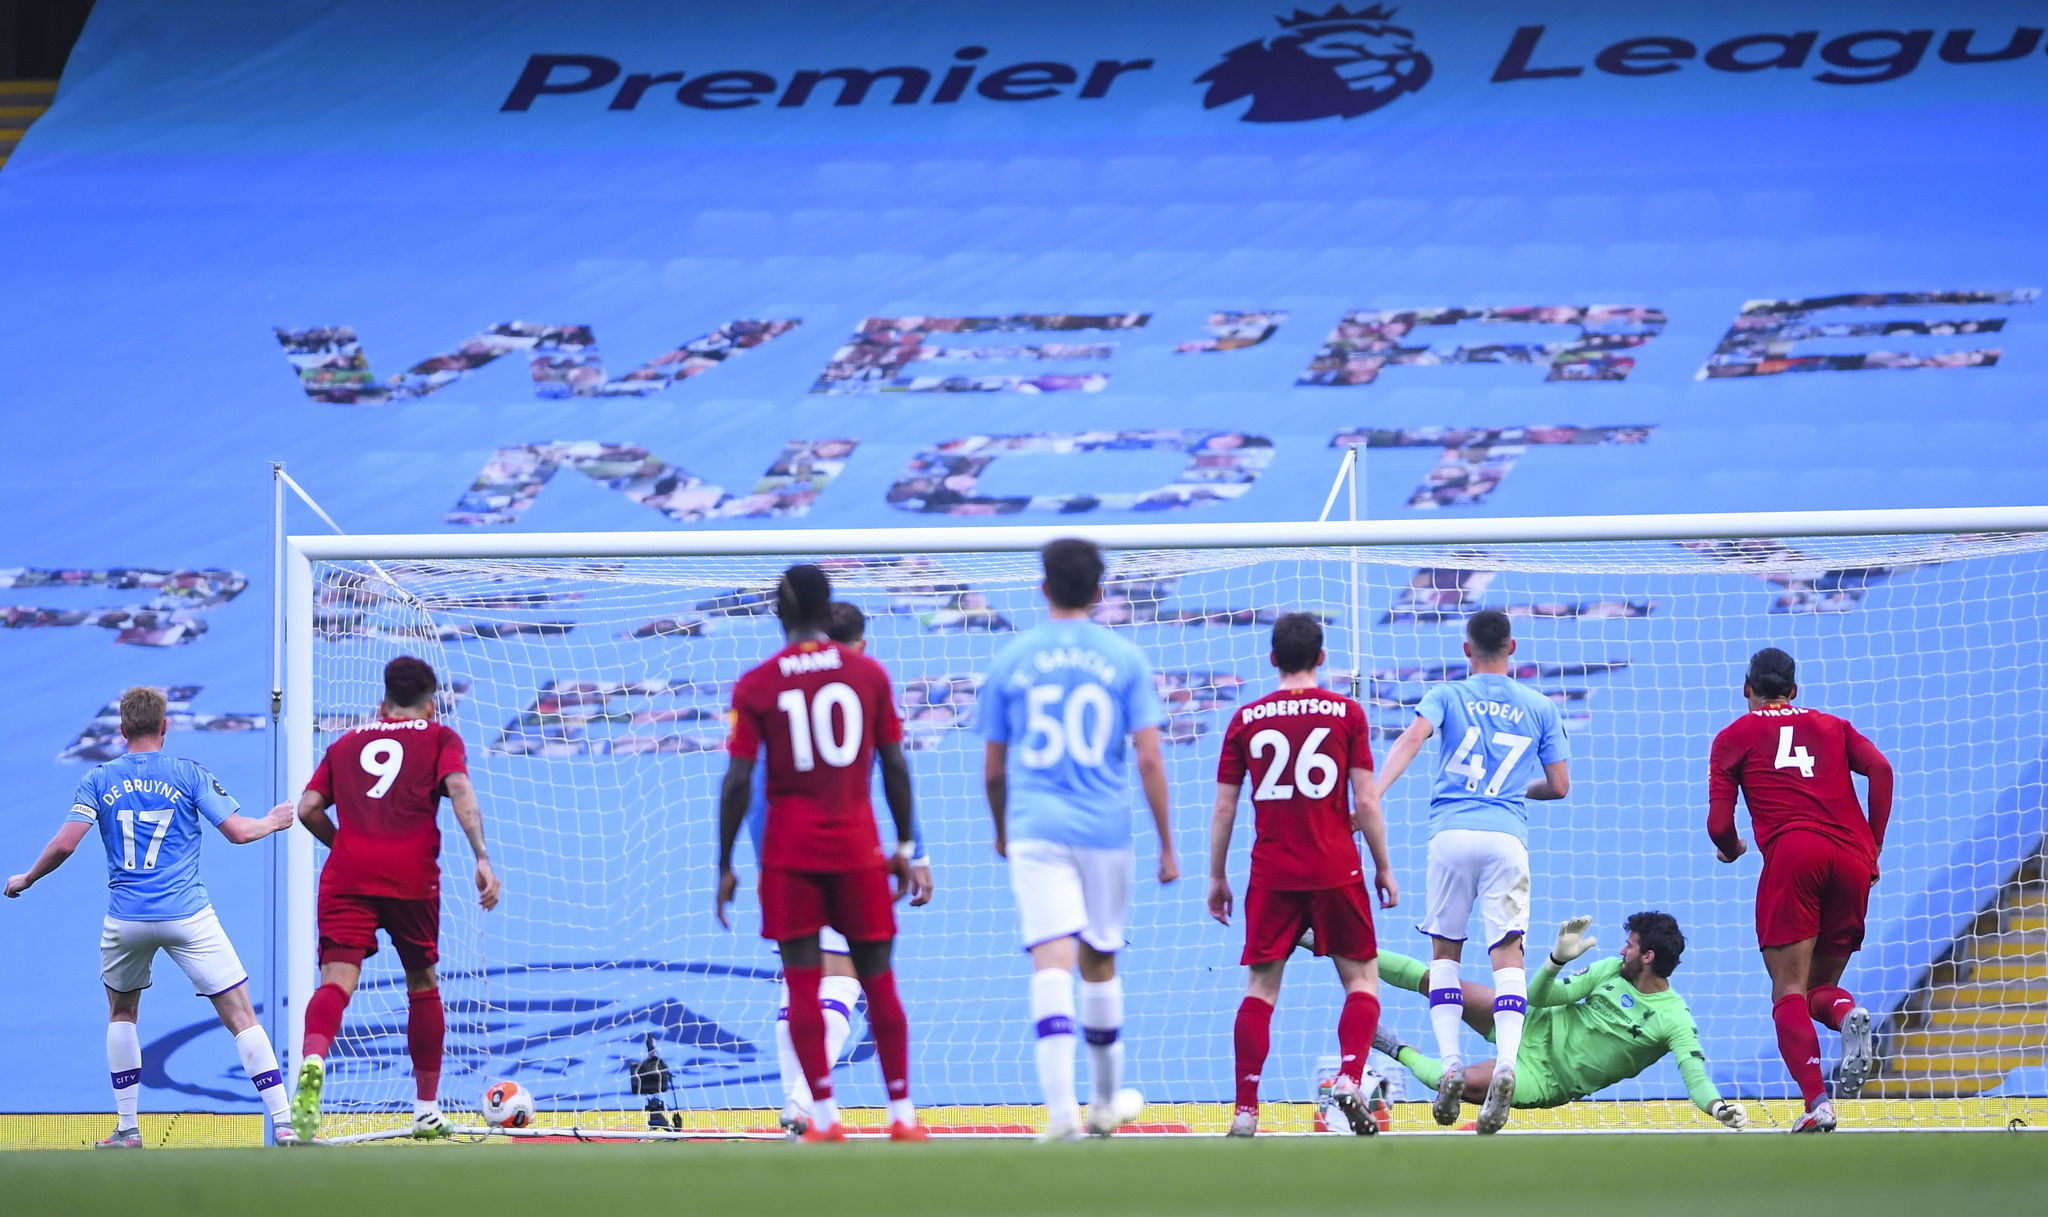 Manchester (United Kingdom), 02/07/2020.- Kevin De lt;HIT gt;Bruyne lt;/HIT gt; (L) of Manchester City scores the opening goal from a penalty during the English Premier League match between Manchester City and Liverpool in Manchester, Britain, 02 July 2020. (Reino Unido) EFE/EPA/Laurence Griffiths/NMC/Pool EDITORIAL USE ONLY. No use with unauthorized audio, video, data, fixture lists, club/league logos or live services. Online in-match use limited to 120 images, no video emulation. No use in betting, games or single club/league/player publications